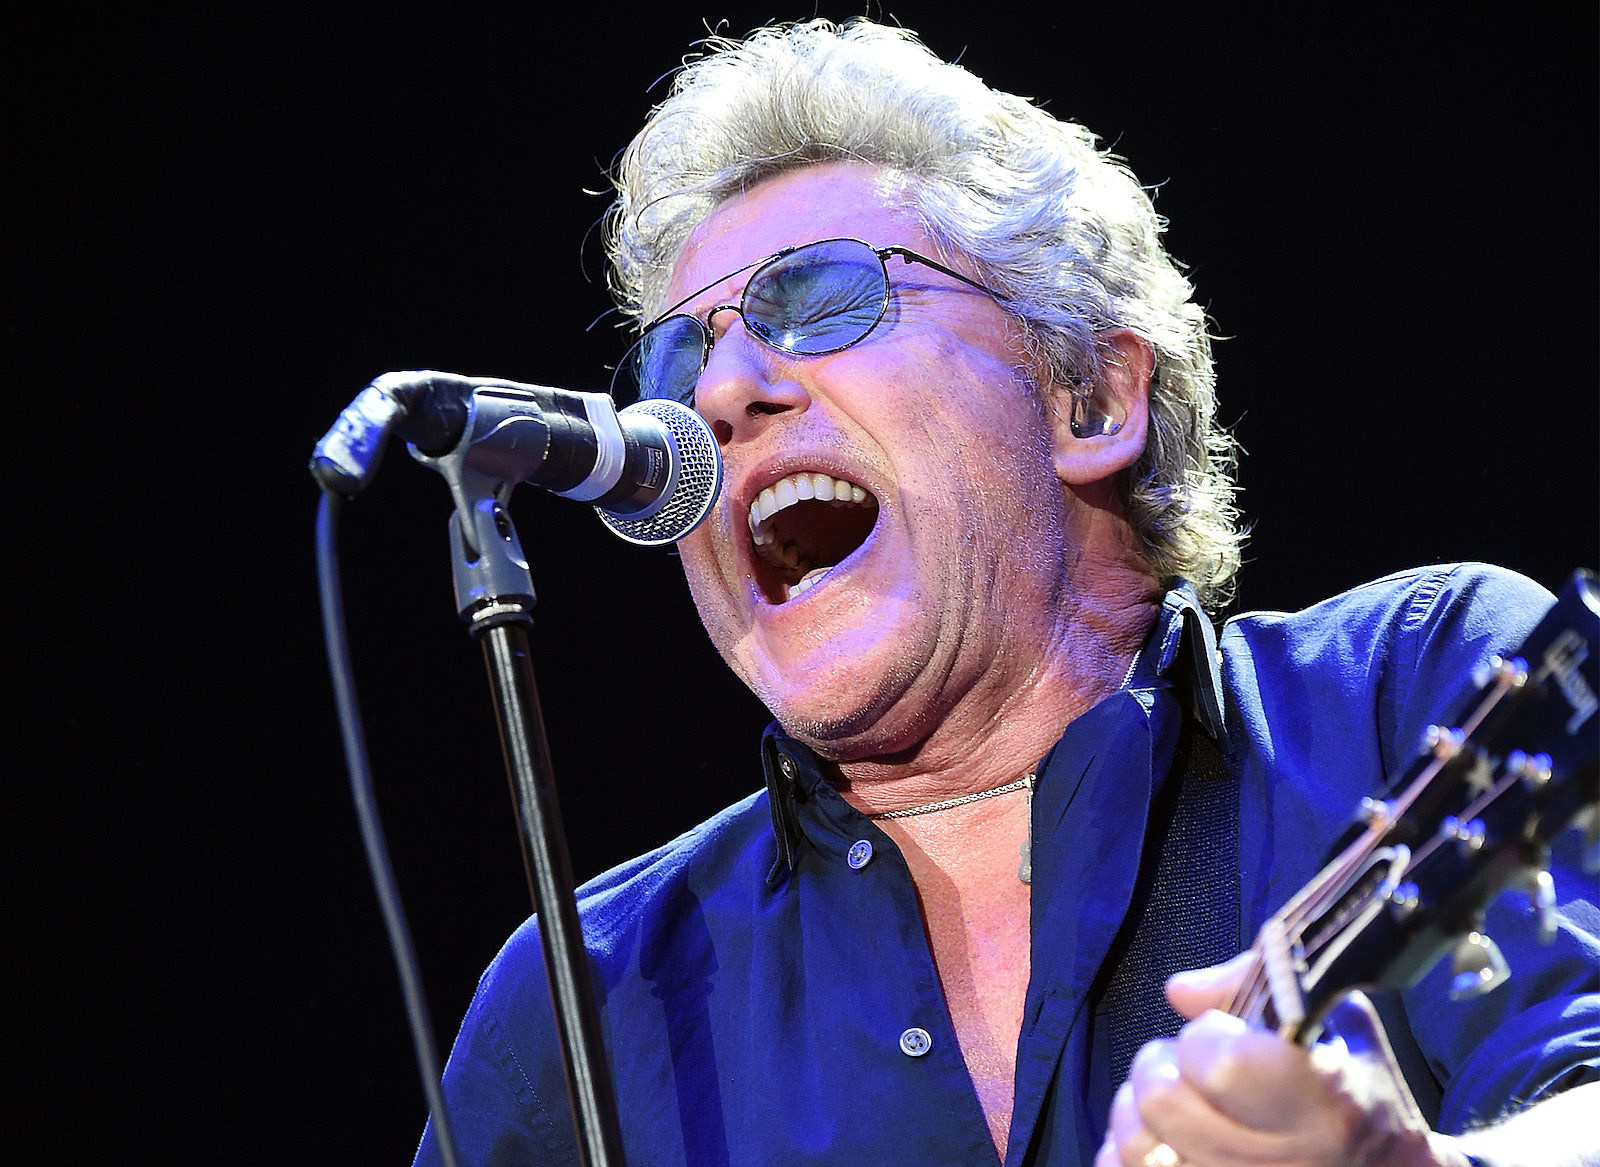 Allergy-Stricken Roger Daltrey Clarifies His Stance on Pot